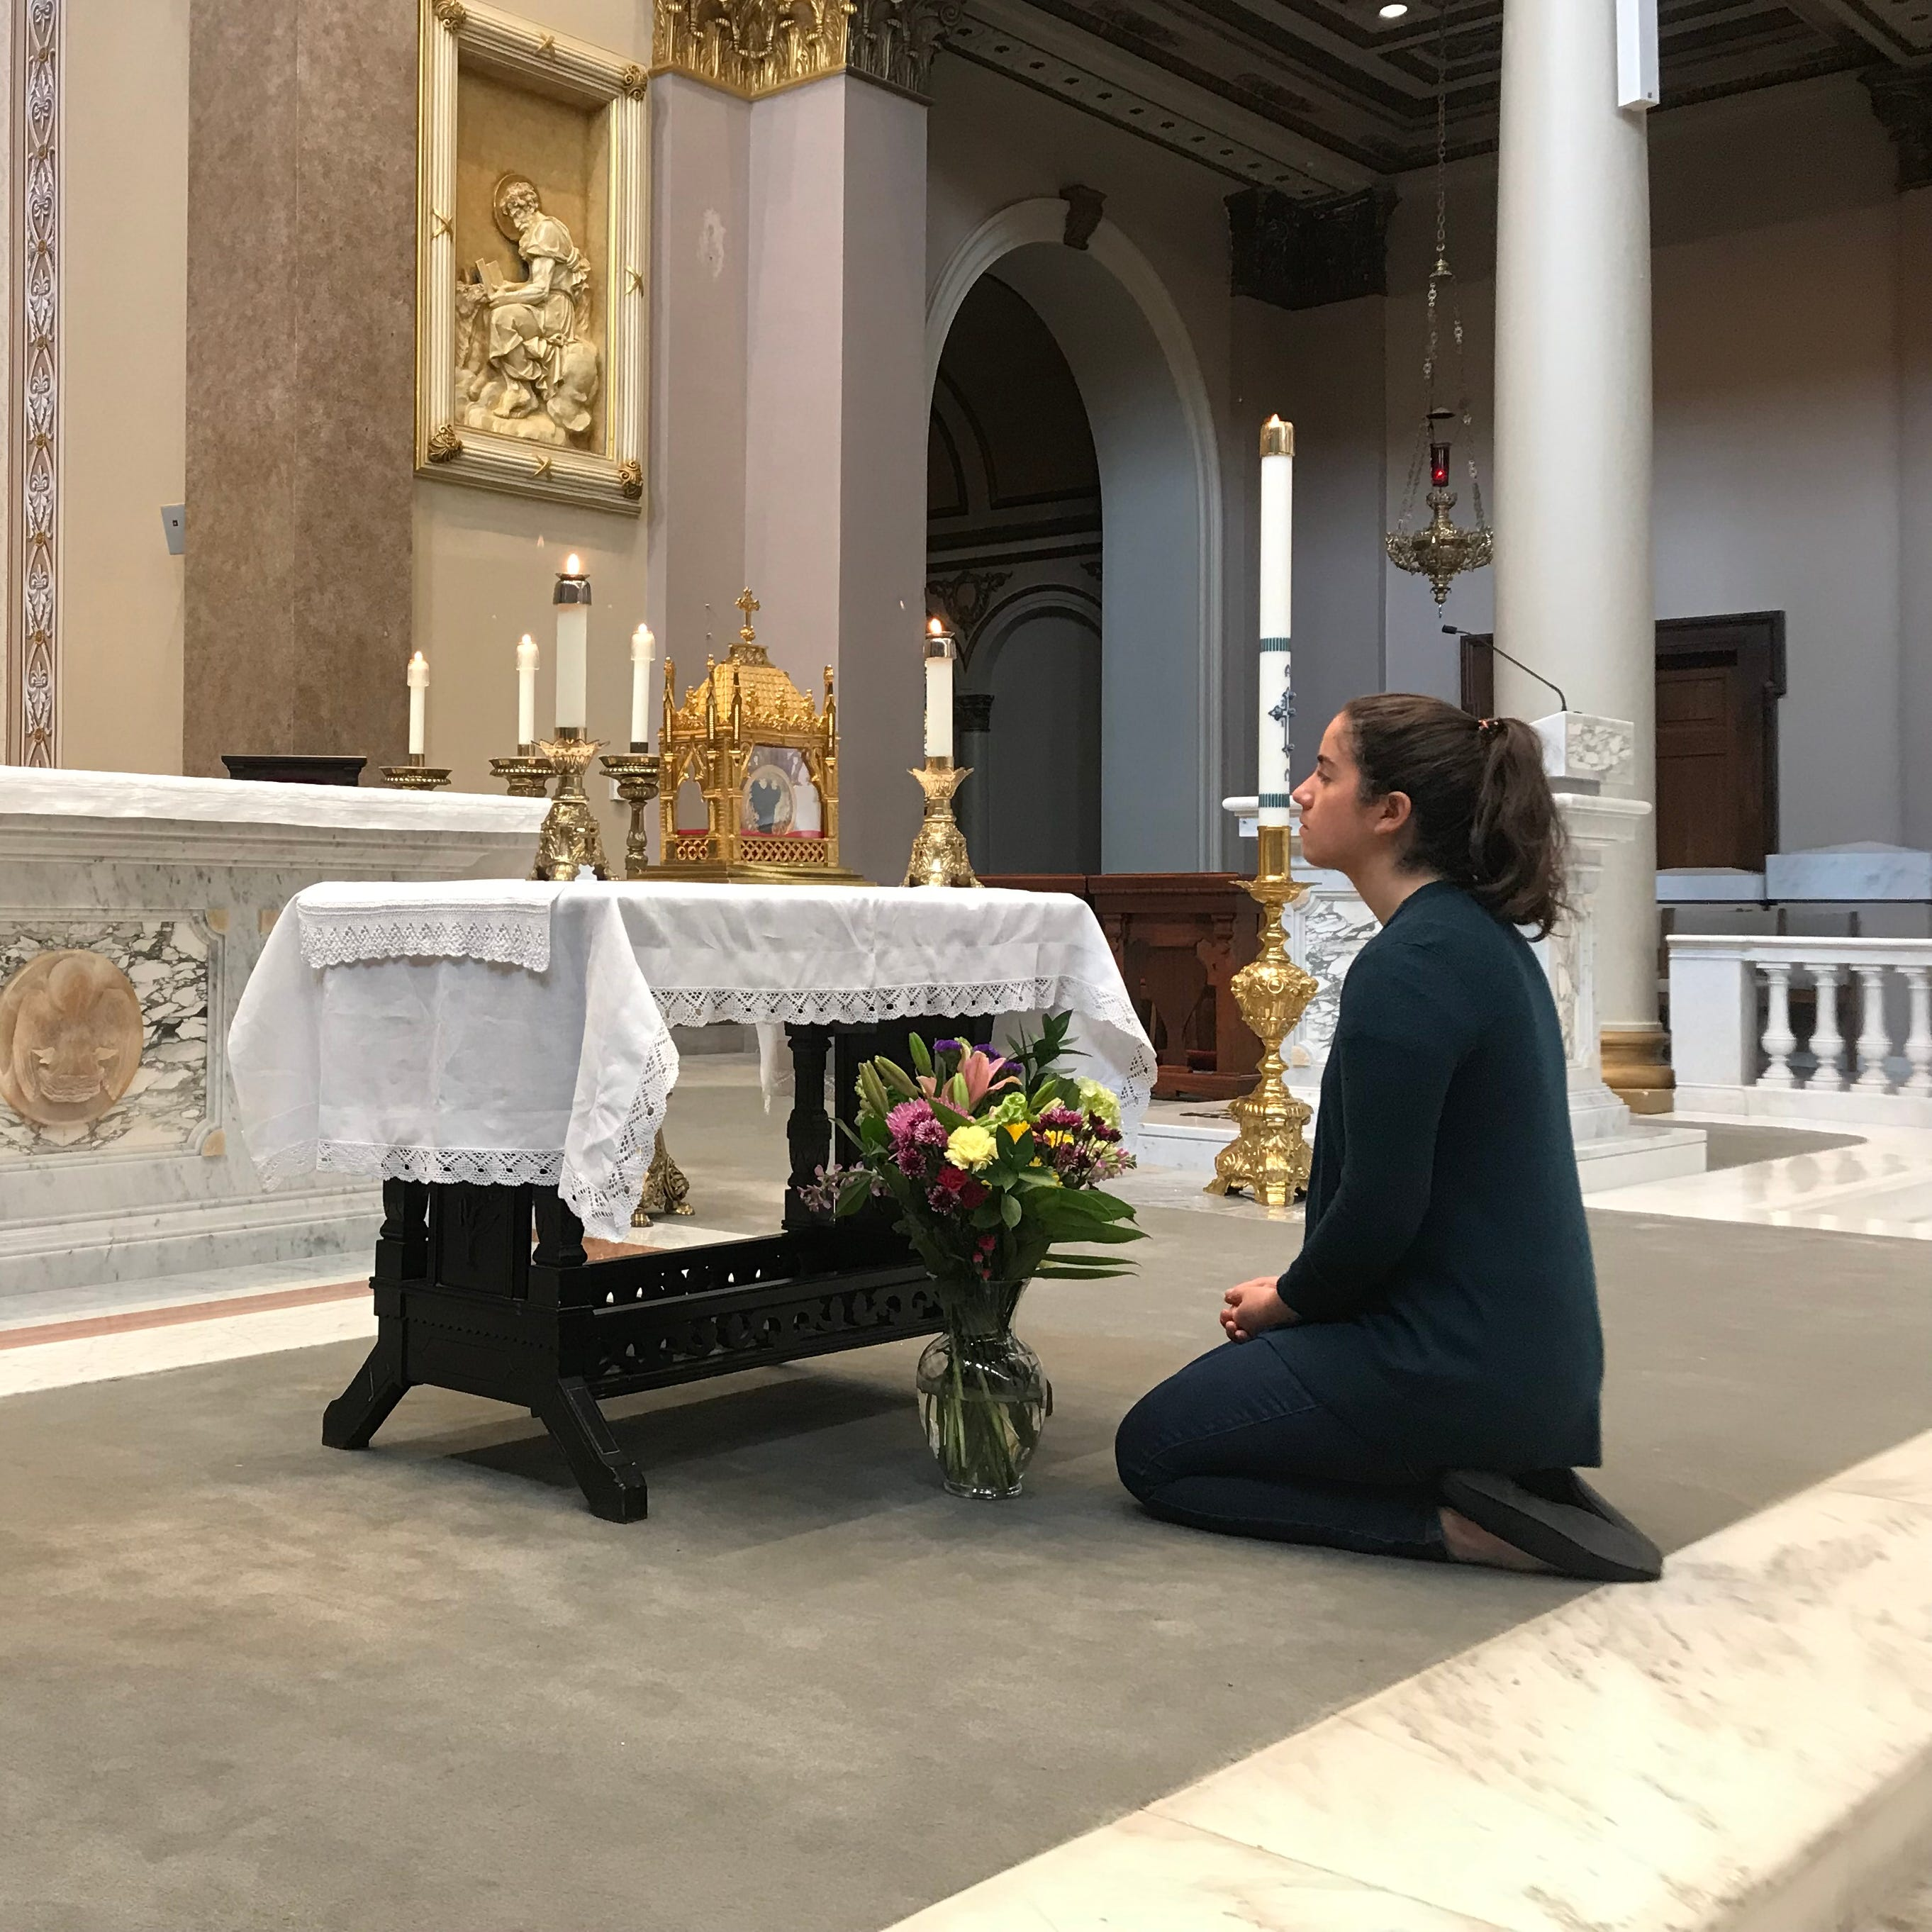 Why Catholics in Tennessee are lining up to see Saint Jean Vianney's heart